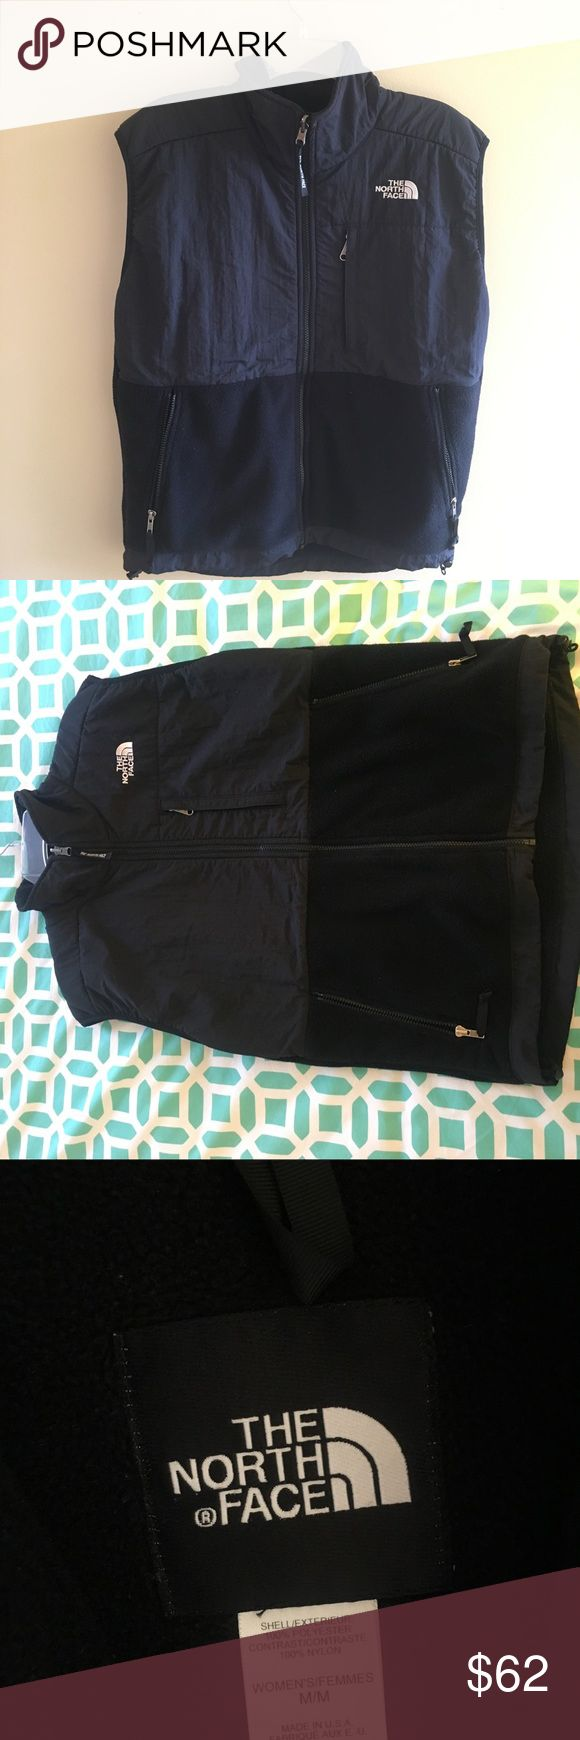 Black North Face Fleece Vest Black north face fleece vest. Size medium women's, but definitely could work for men too. Great condition, hardly worn. Large pockets. Great for winter/fall!! North Face Jackets & Coats Vests